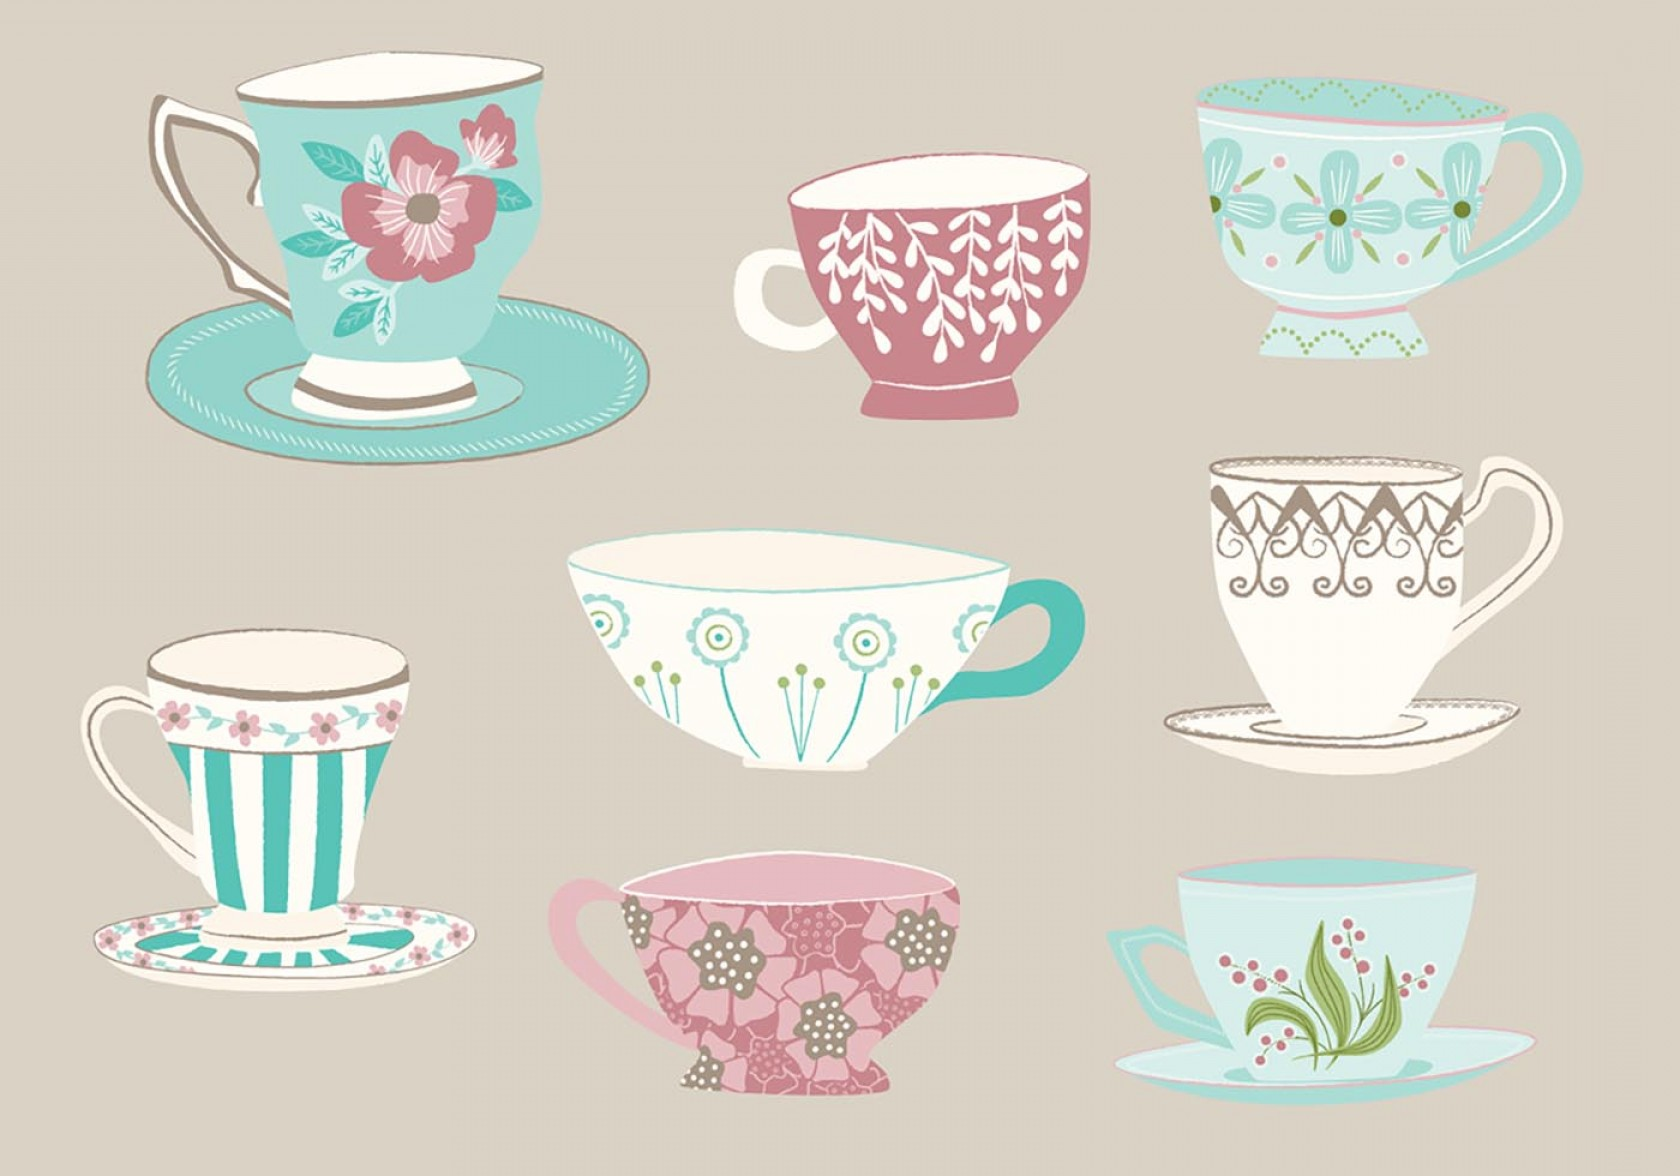 Tea Set Vector: Hand Drawn Tea Cup Vectors